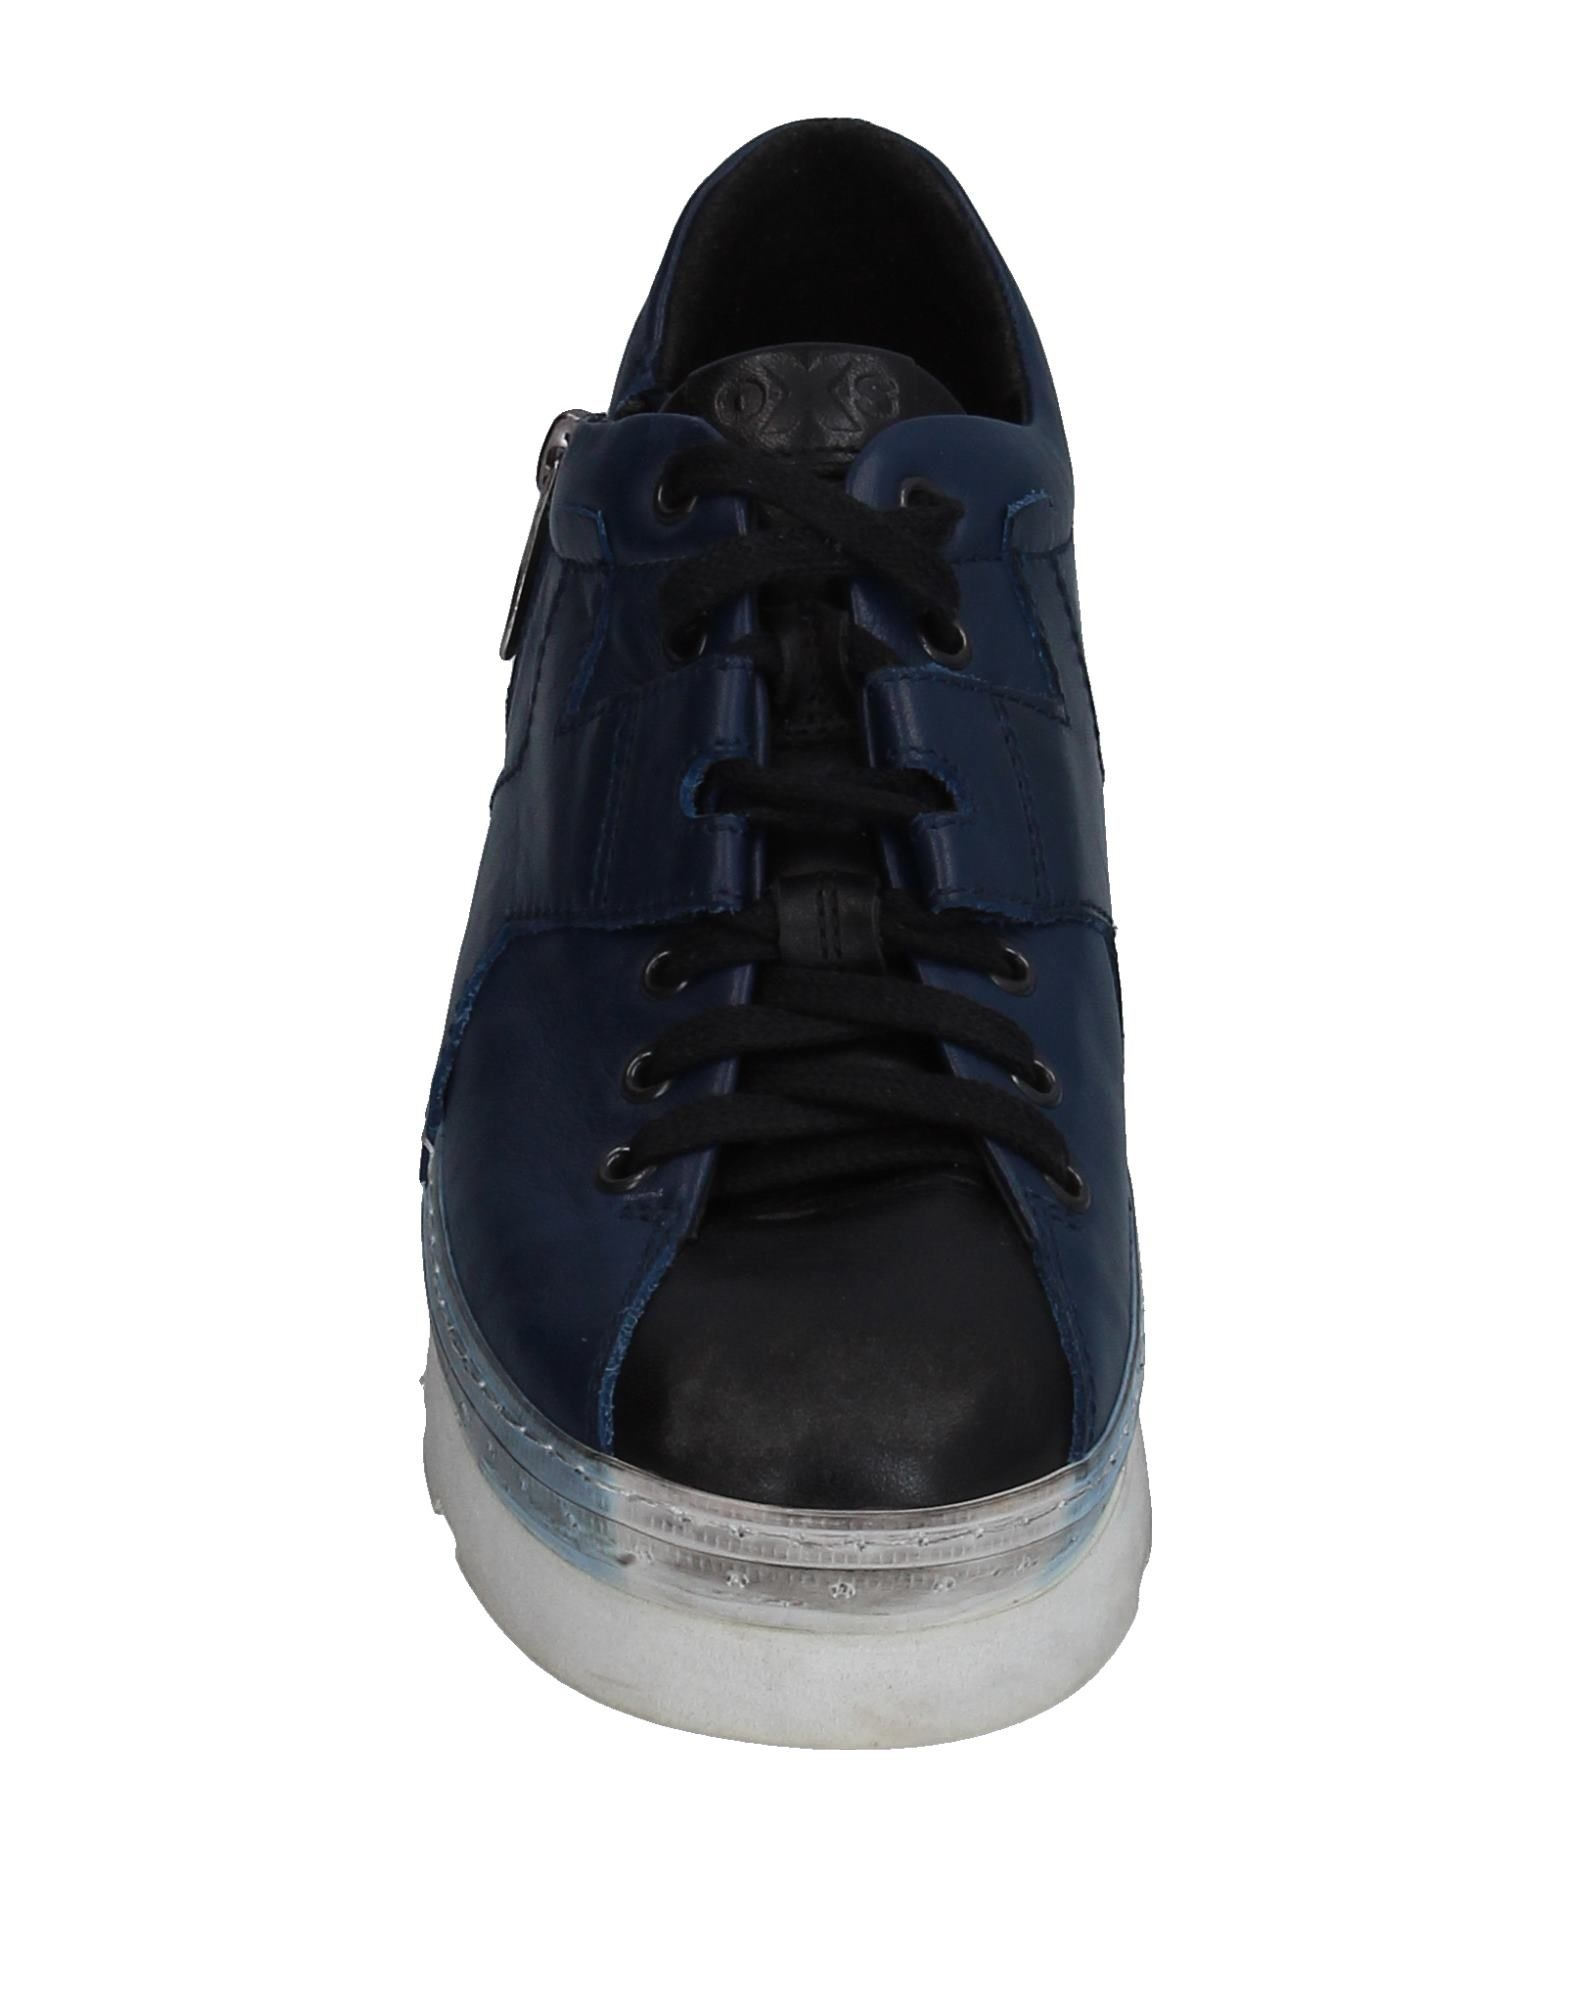 Sneakers O.X.S. Femme - Sneakers O.X.S. sur